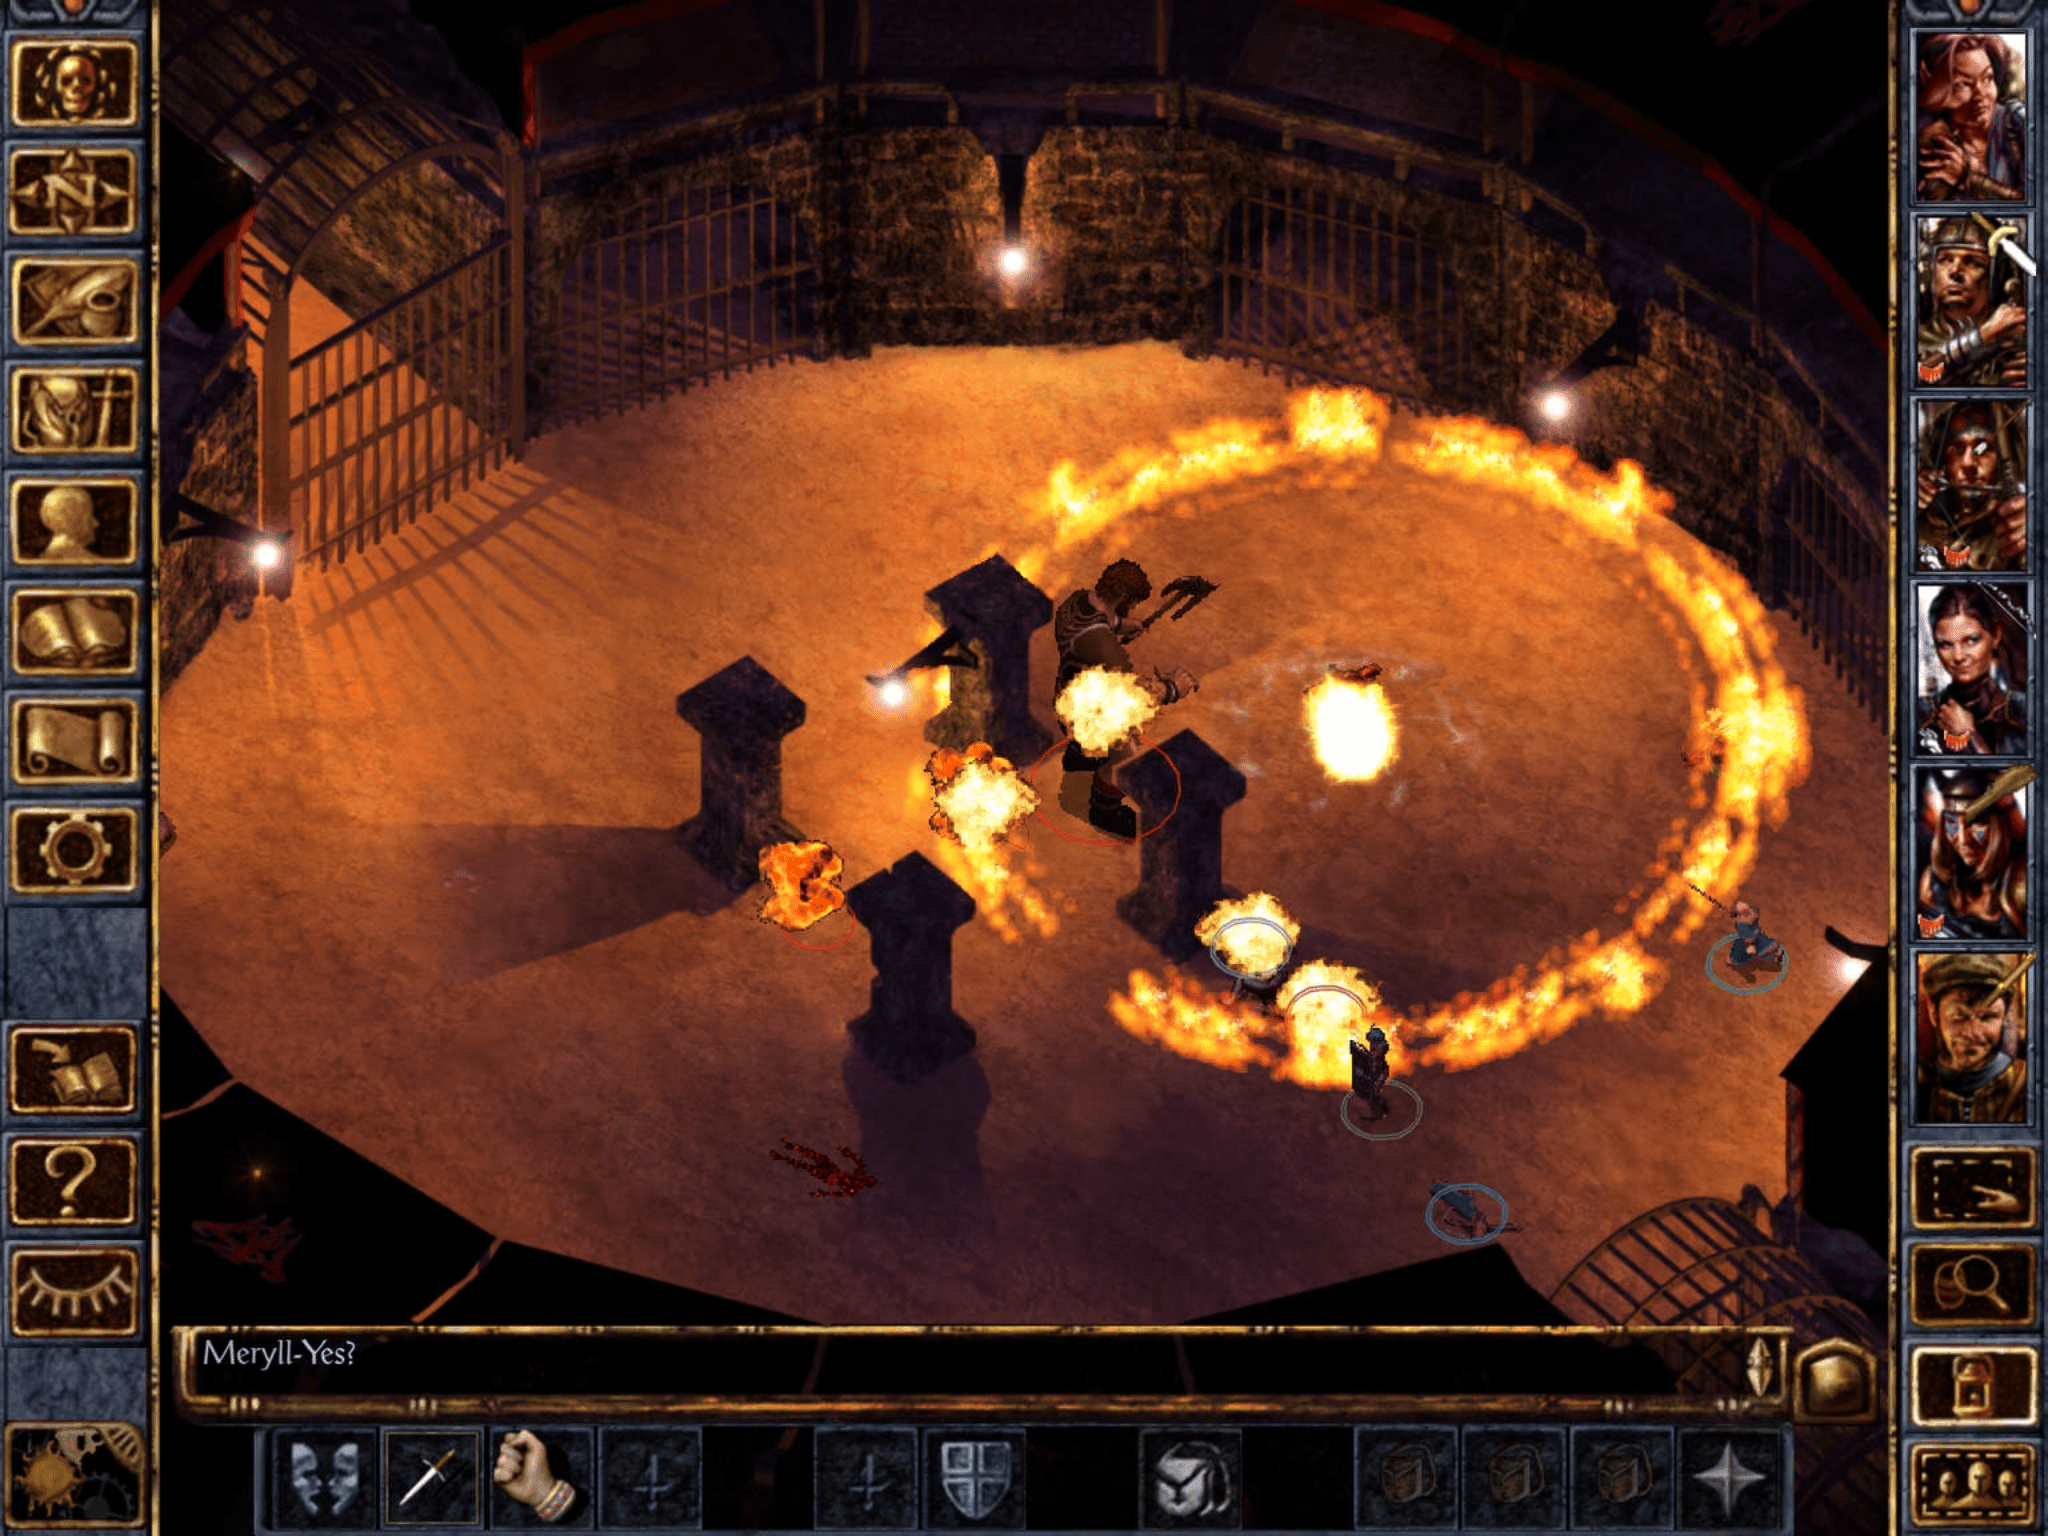 The Best Games Like Diablo for iOS